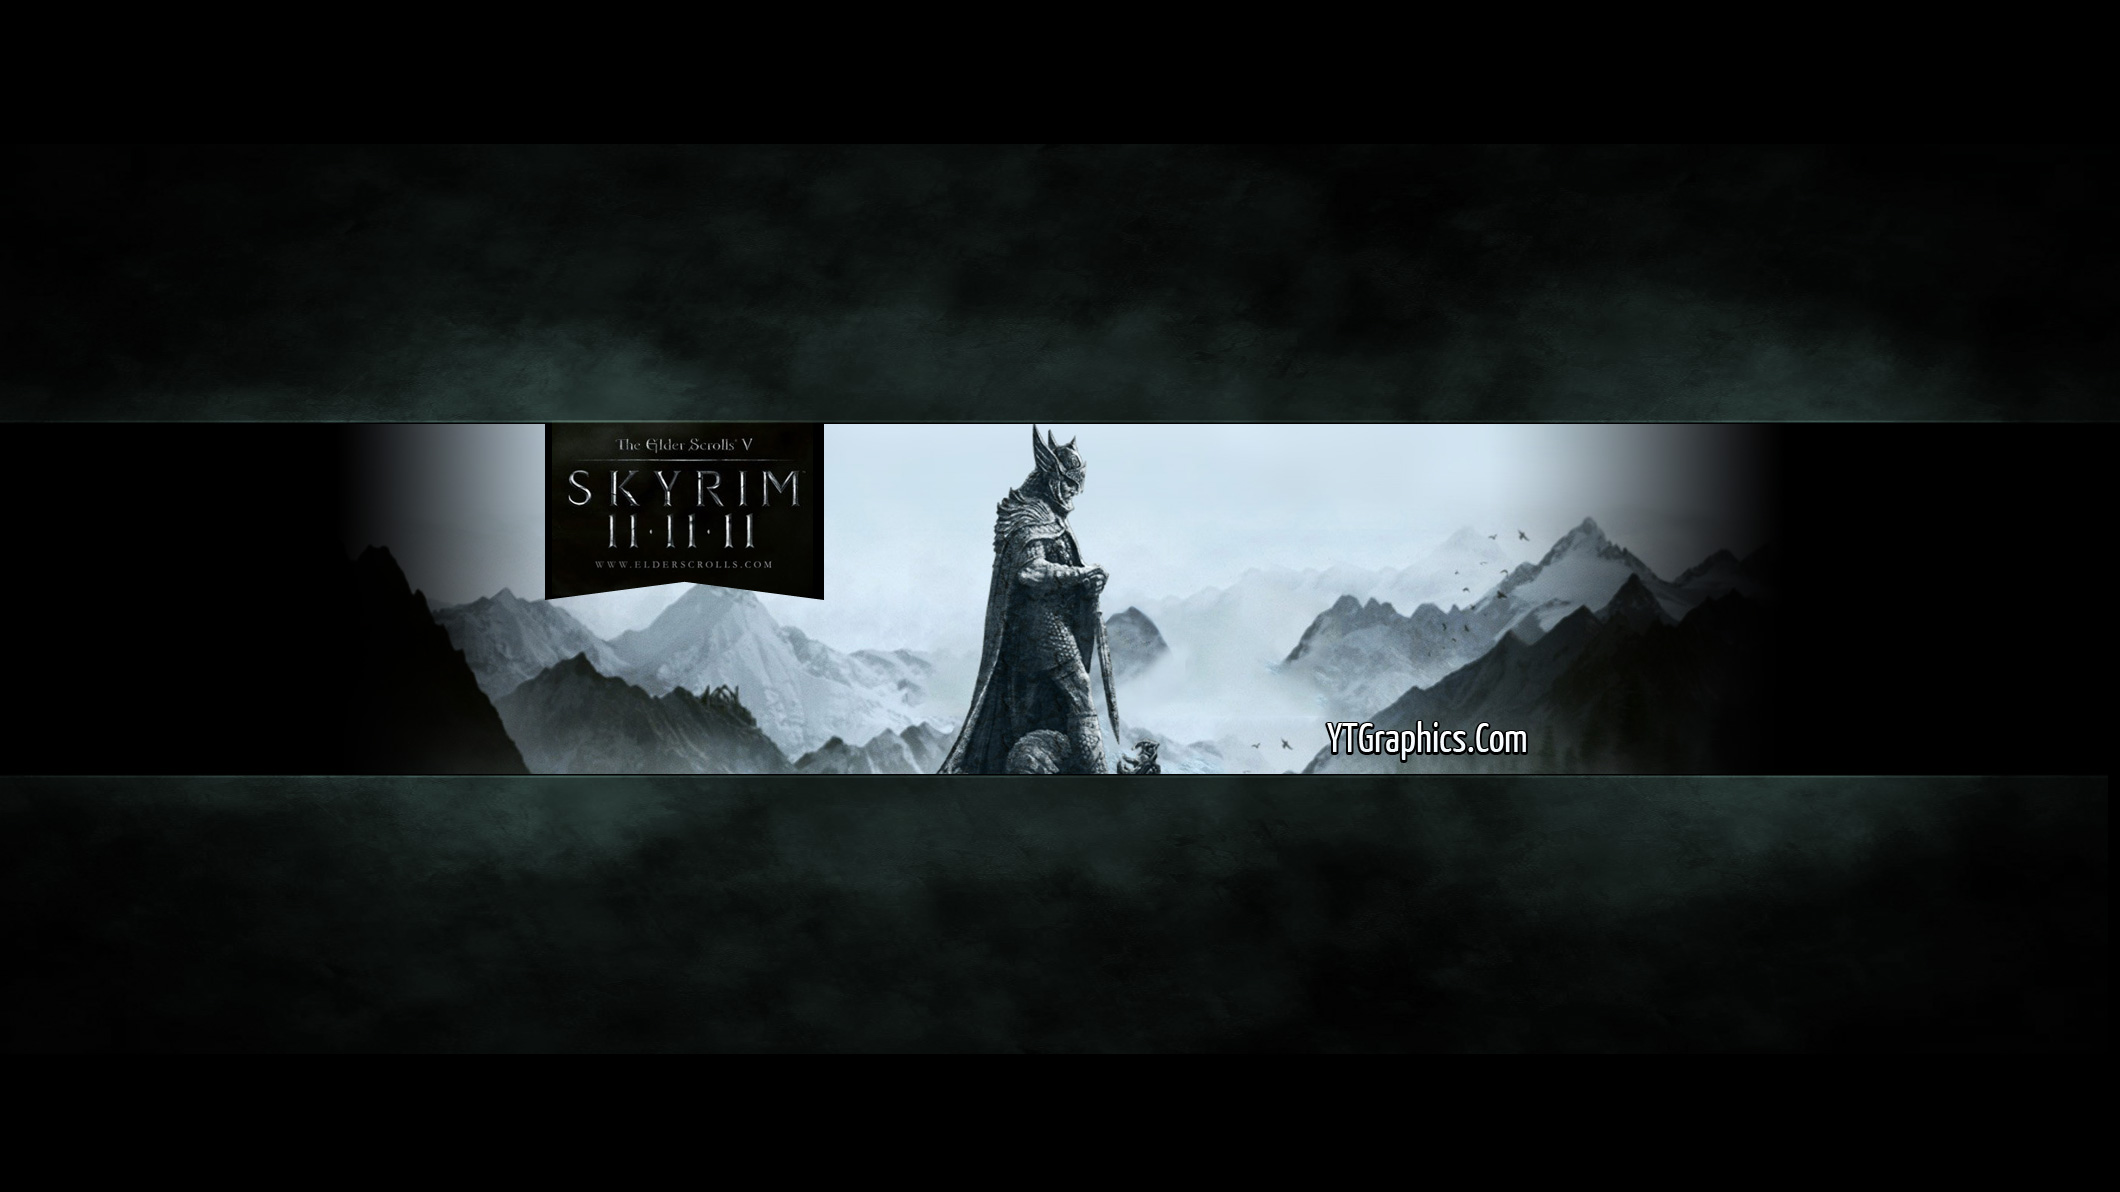 Skyrim Youtube Channel Art Banner - YouTube Channel Art Banners